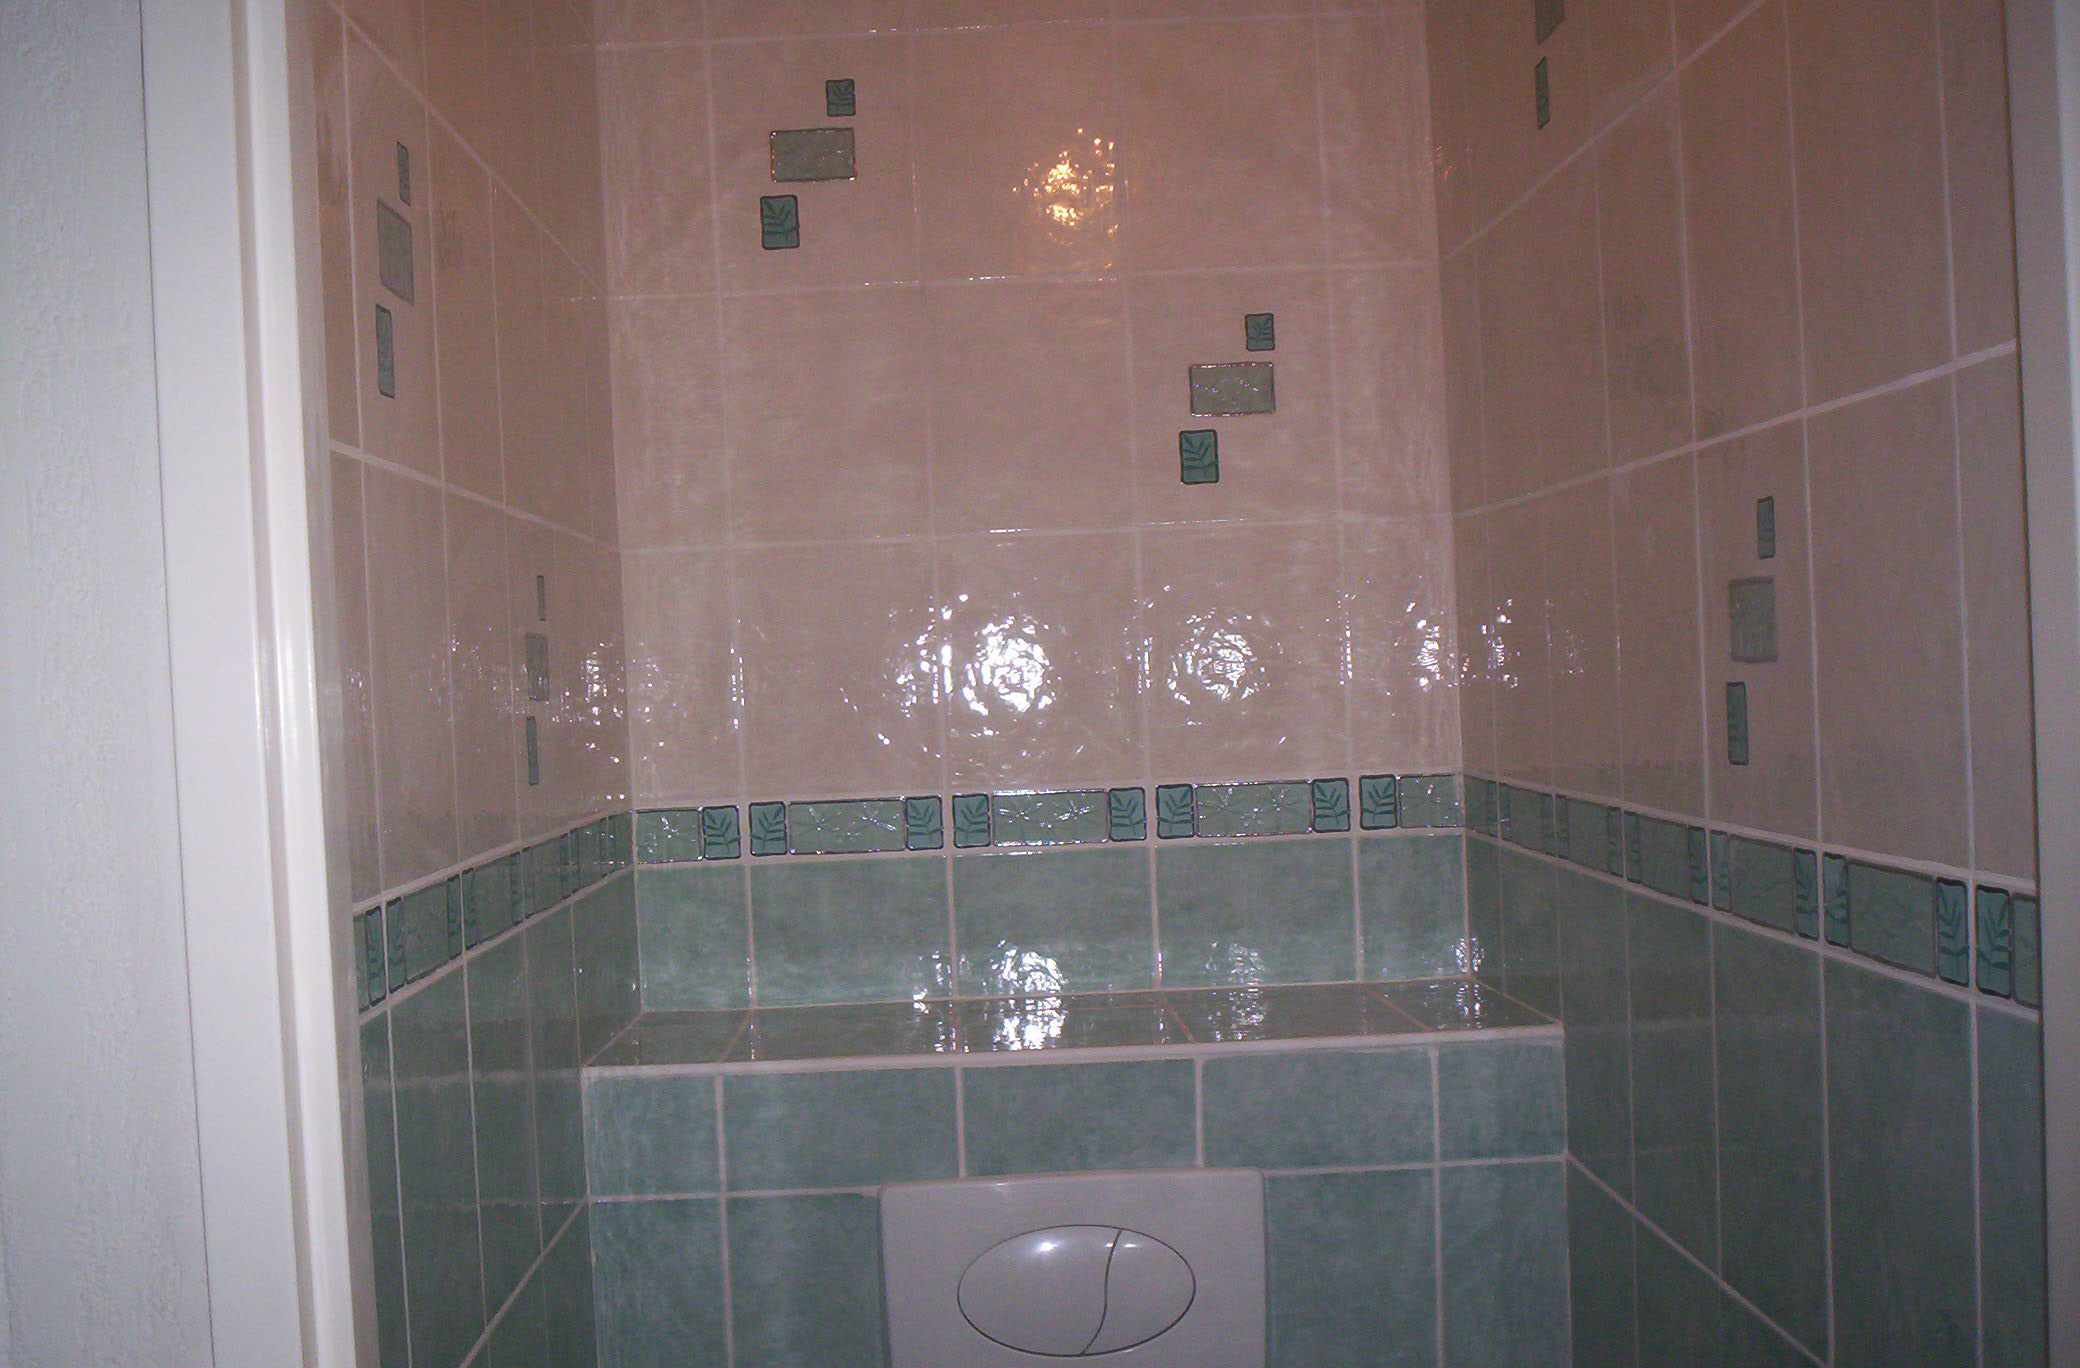 Leroy merlin salle de bain exemple with stickers carrelage salle de bain leroy merlin - Stickers carrelage leroy merlin ...